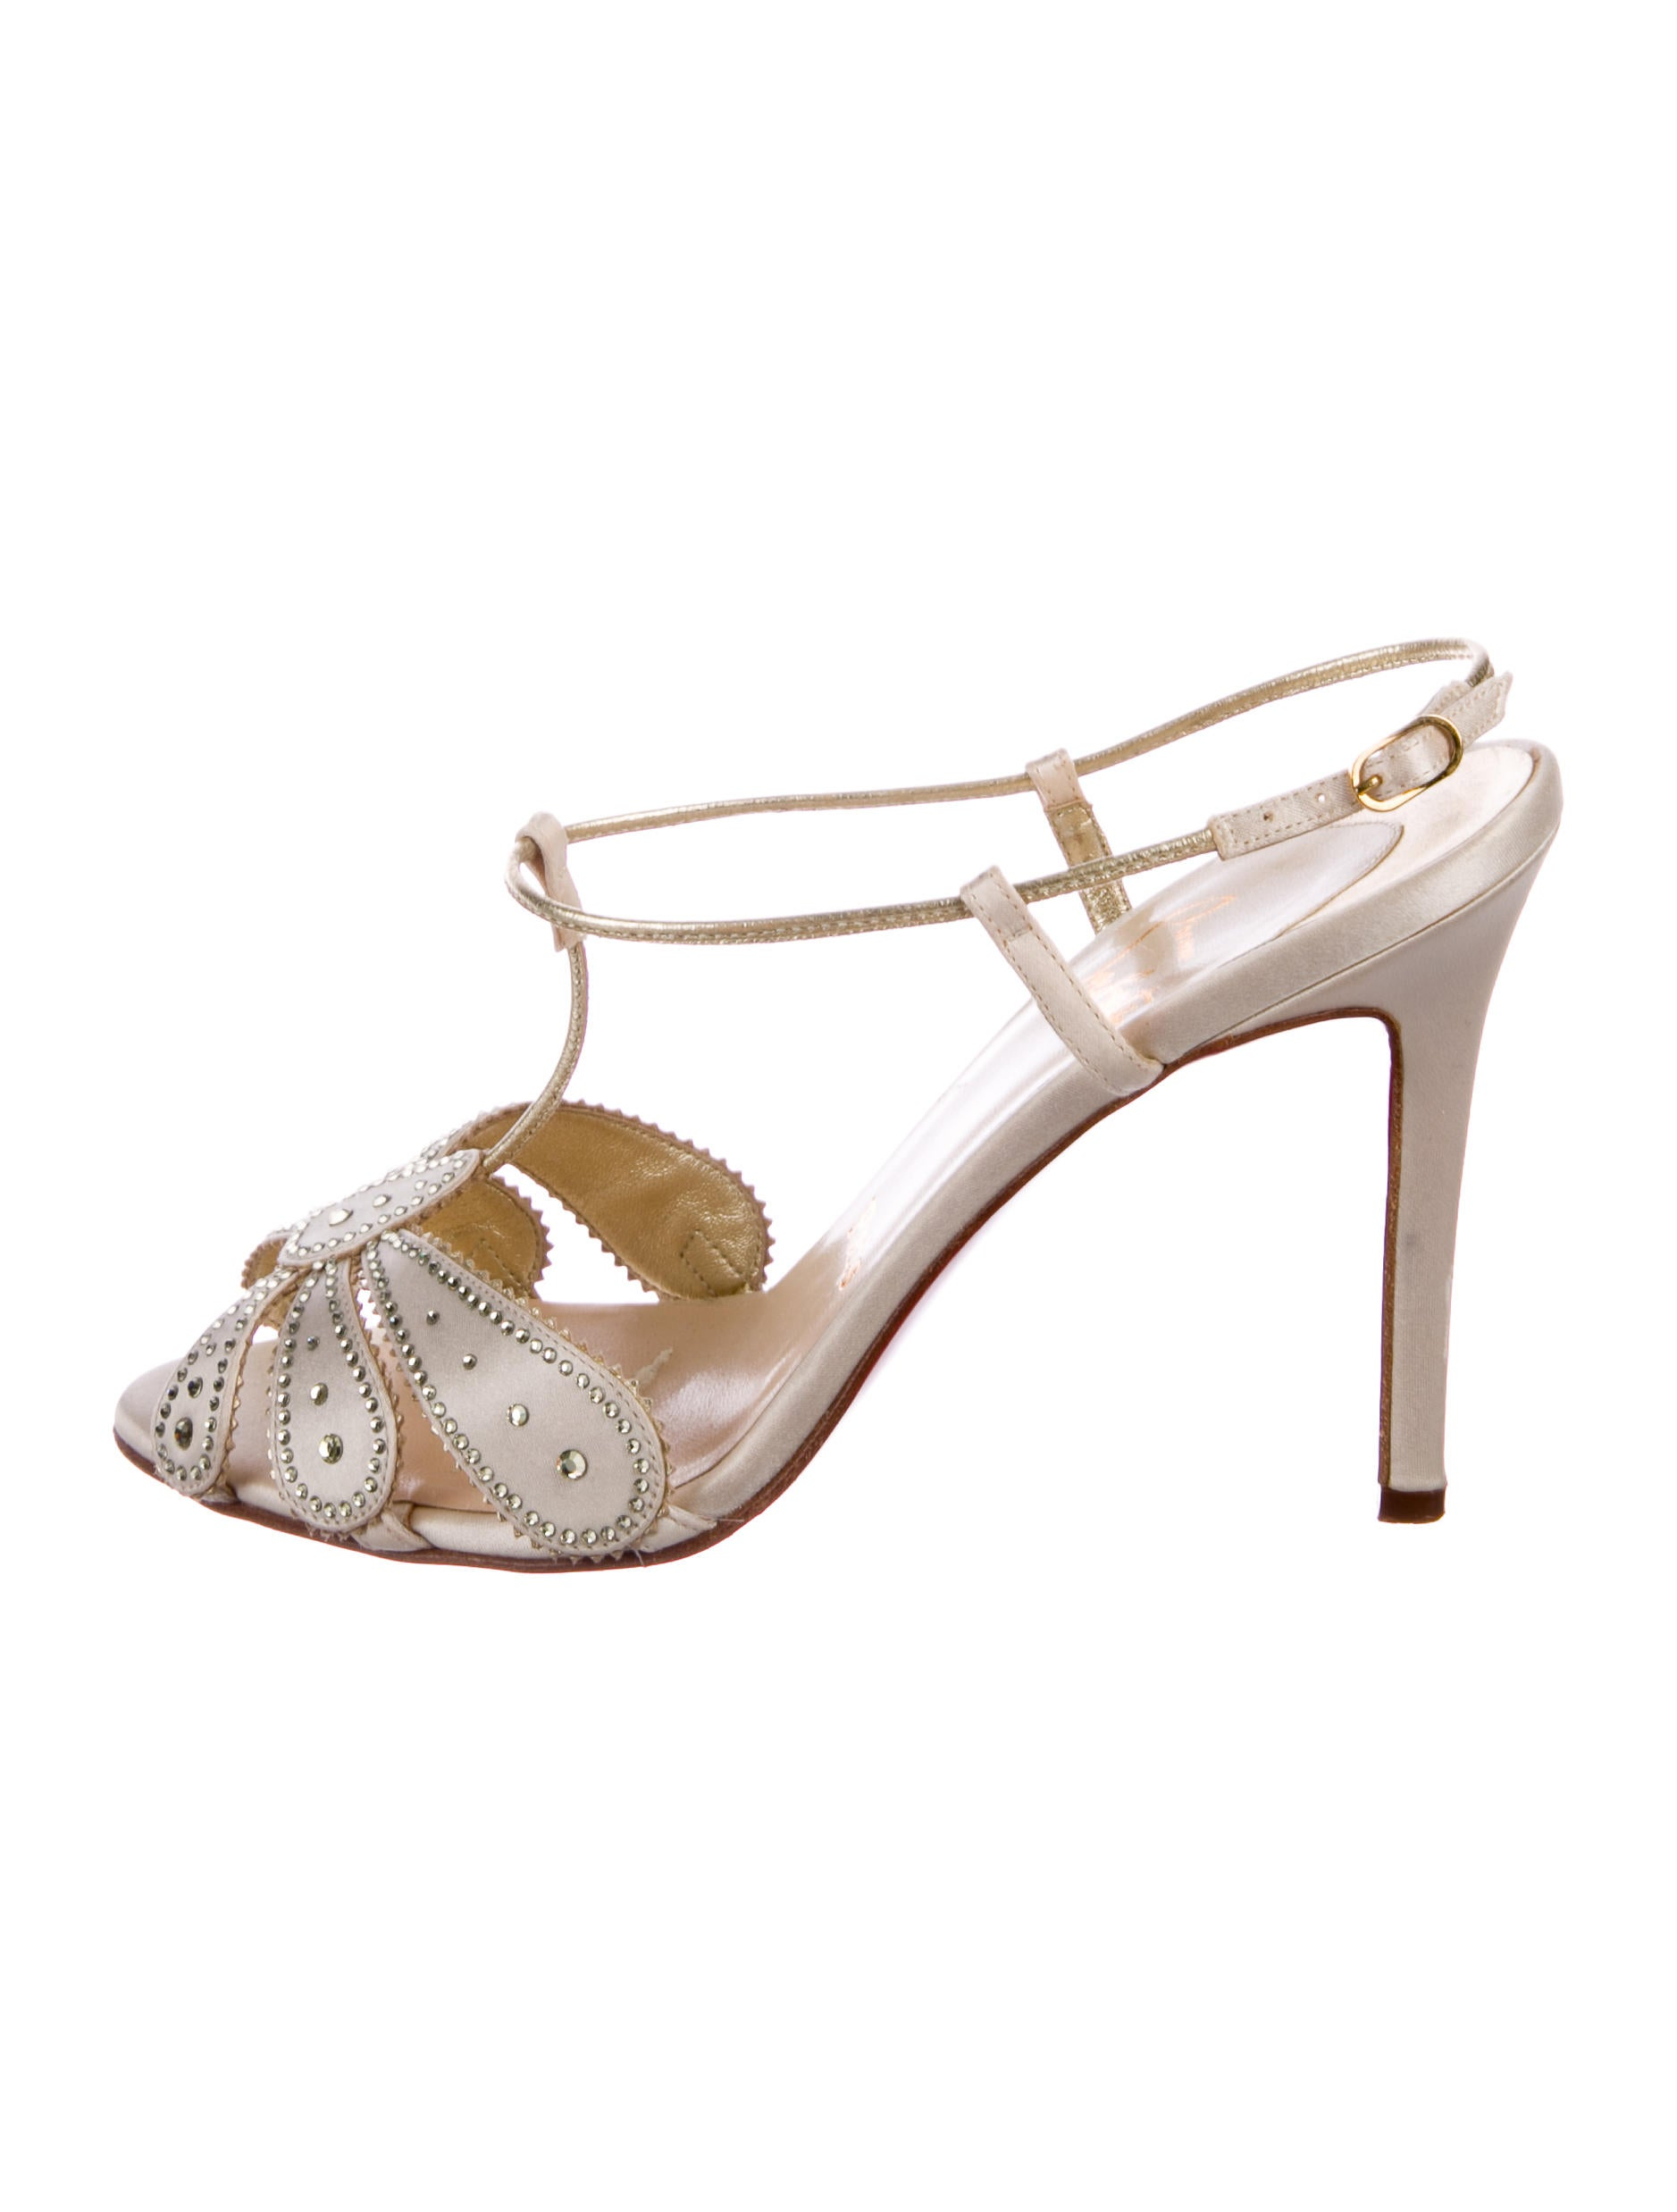 Christian Louboutin Satin Embellished Sandals best sale cheap price free shipping latest collections free shipping pick a best 5V2DXbr7bk